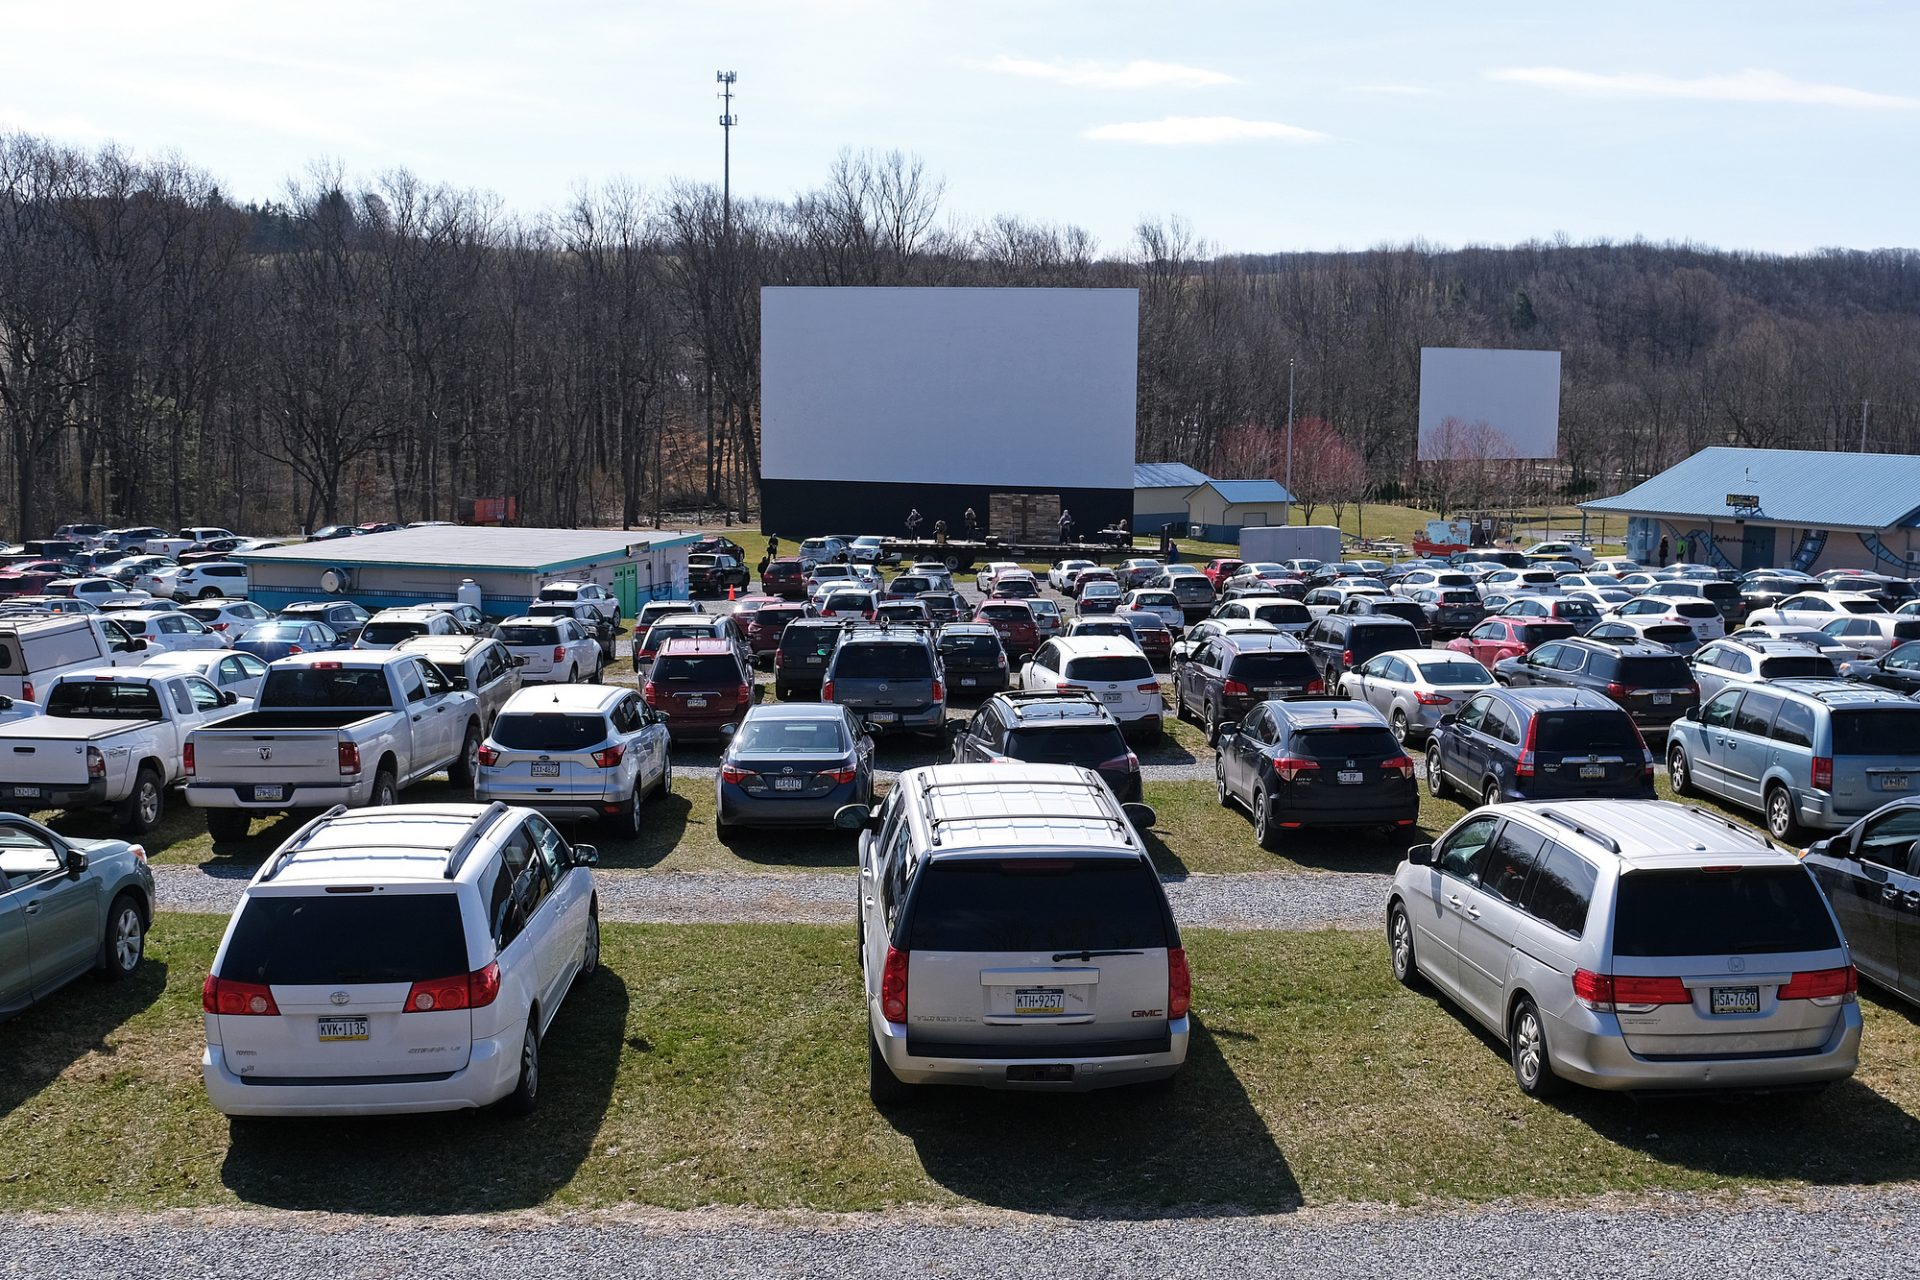 Bethany Wesleyan Church holds Sunday worship service Mar. 22, 2020, at Becky's Drive-In in Walnutport, Pennsylvania. Concerns over the coronavirus have closed churches in an effort to avoid gatherings of large crowds.